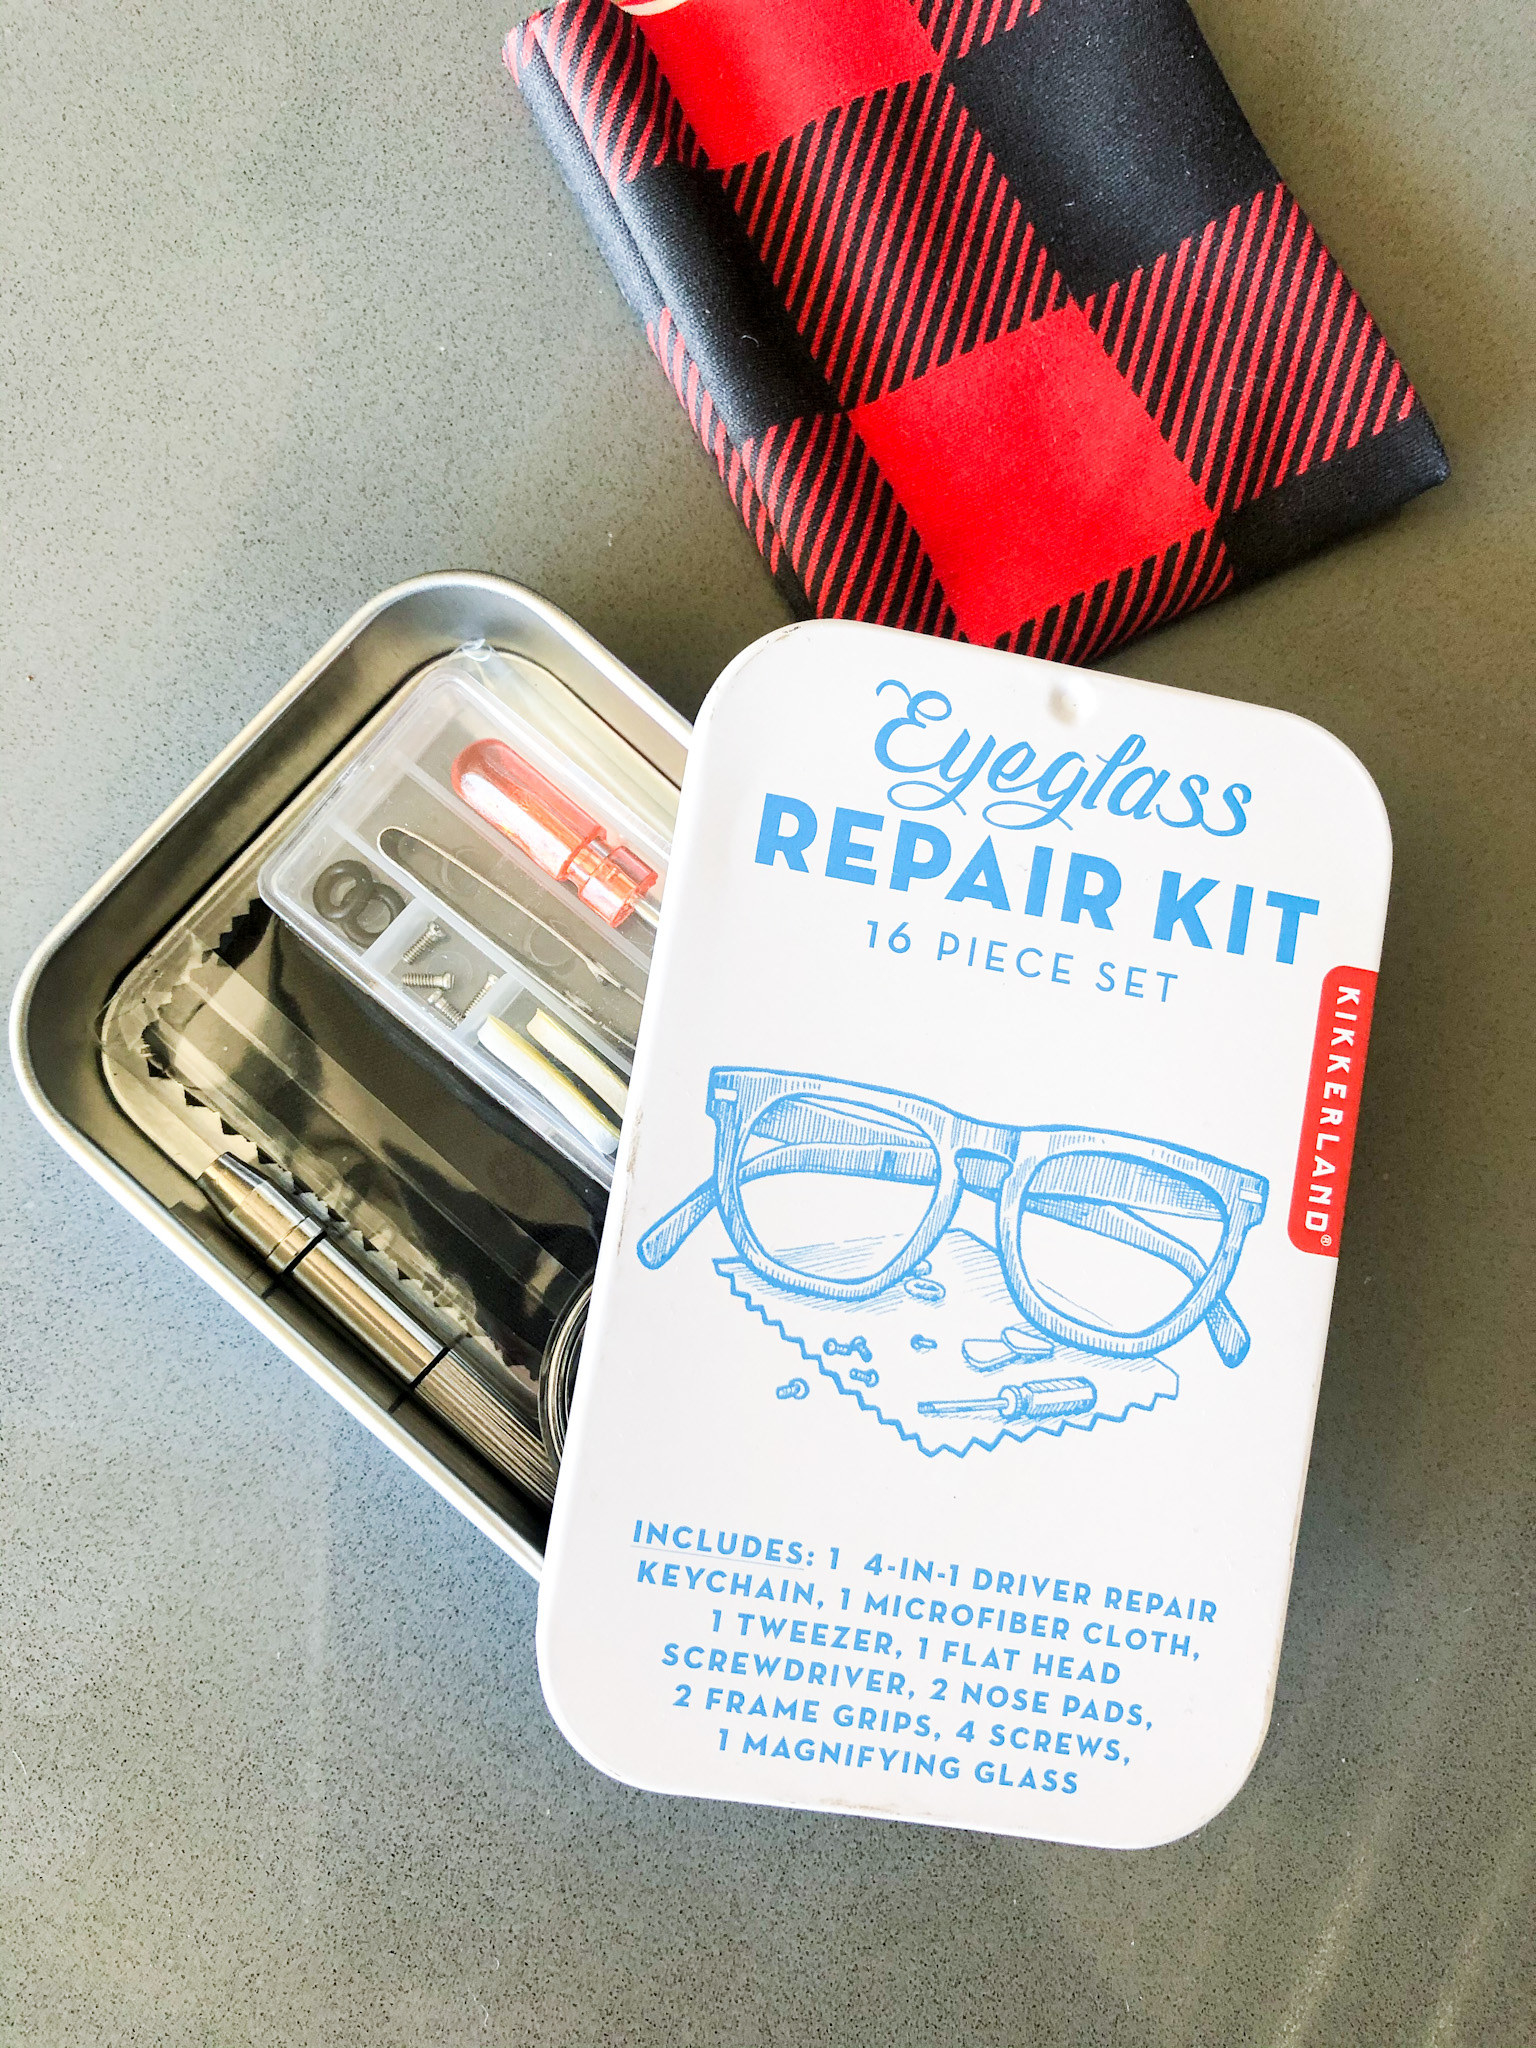 A flatlay of the open eyeglass repair kit showing what's inside